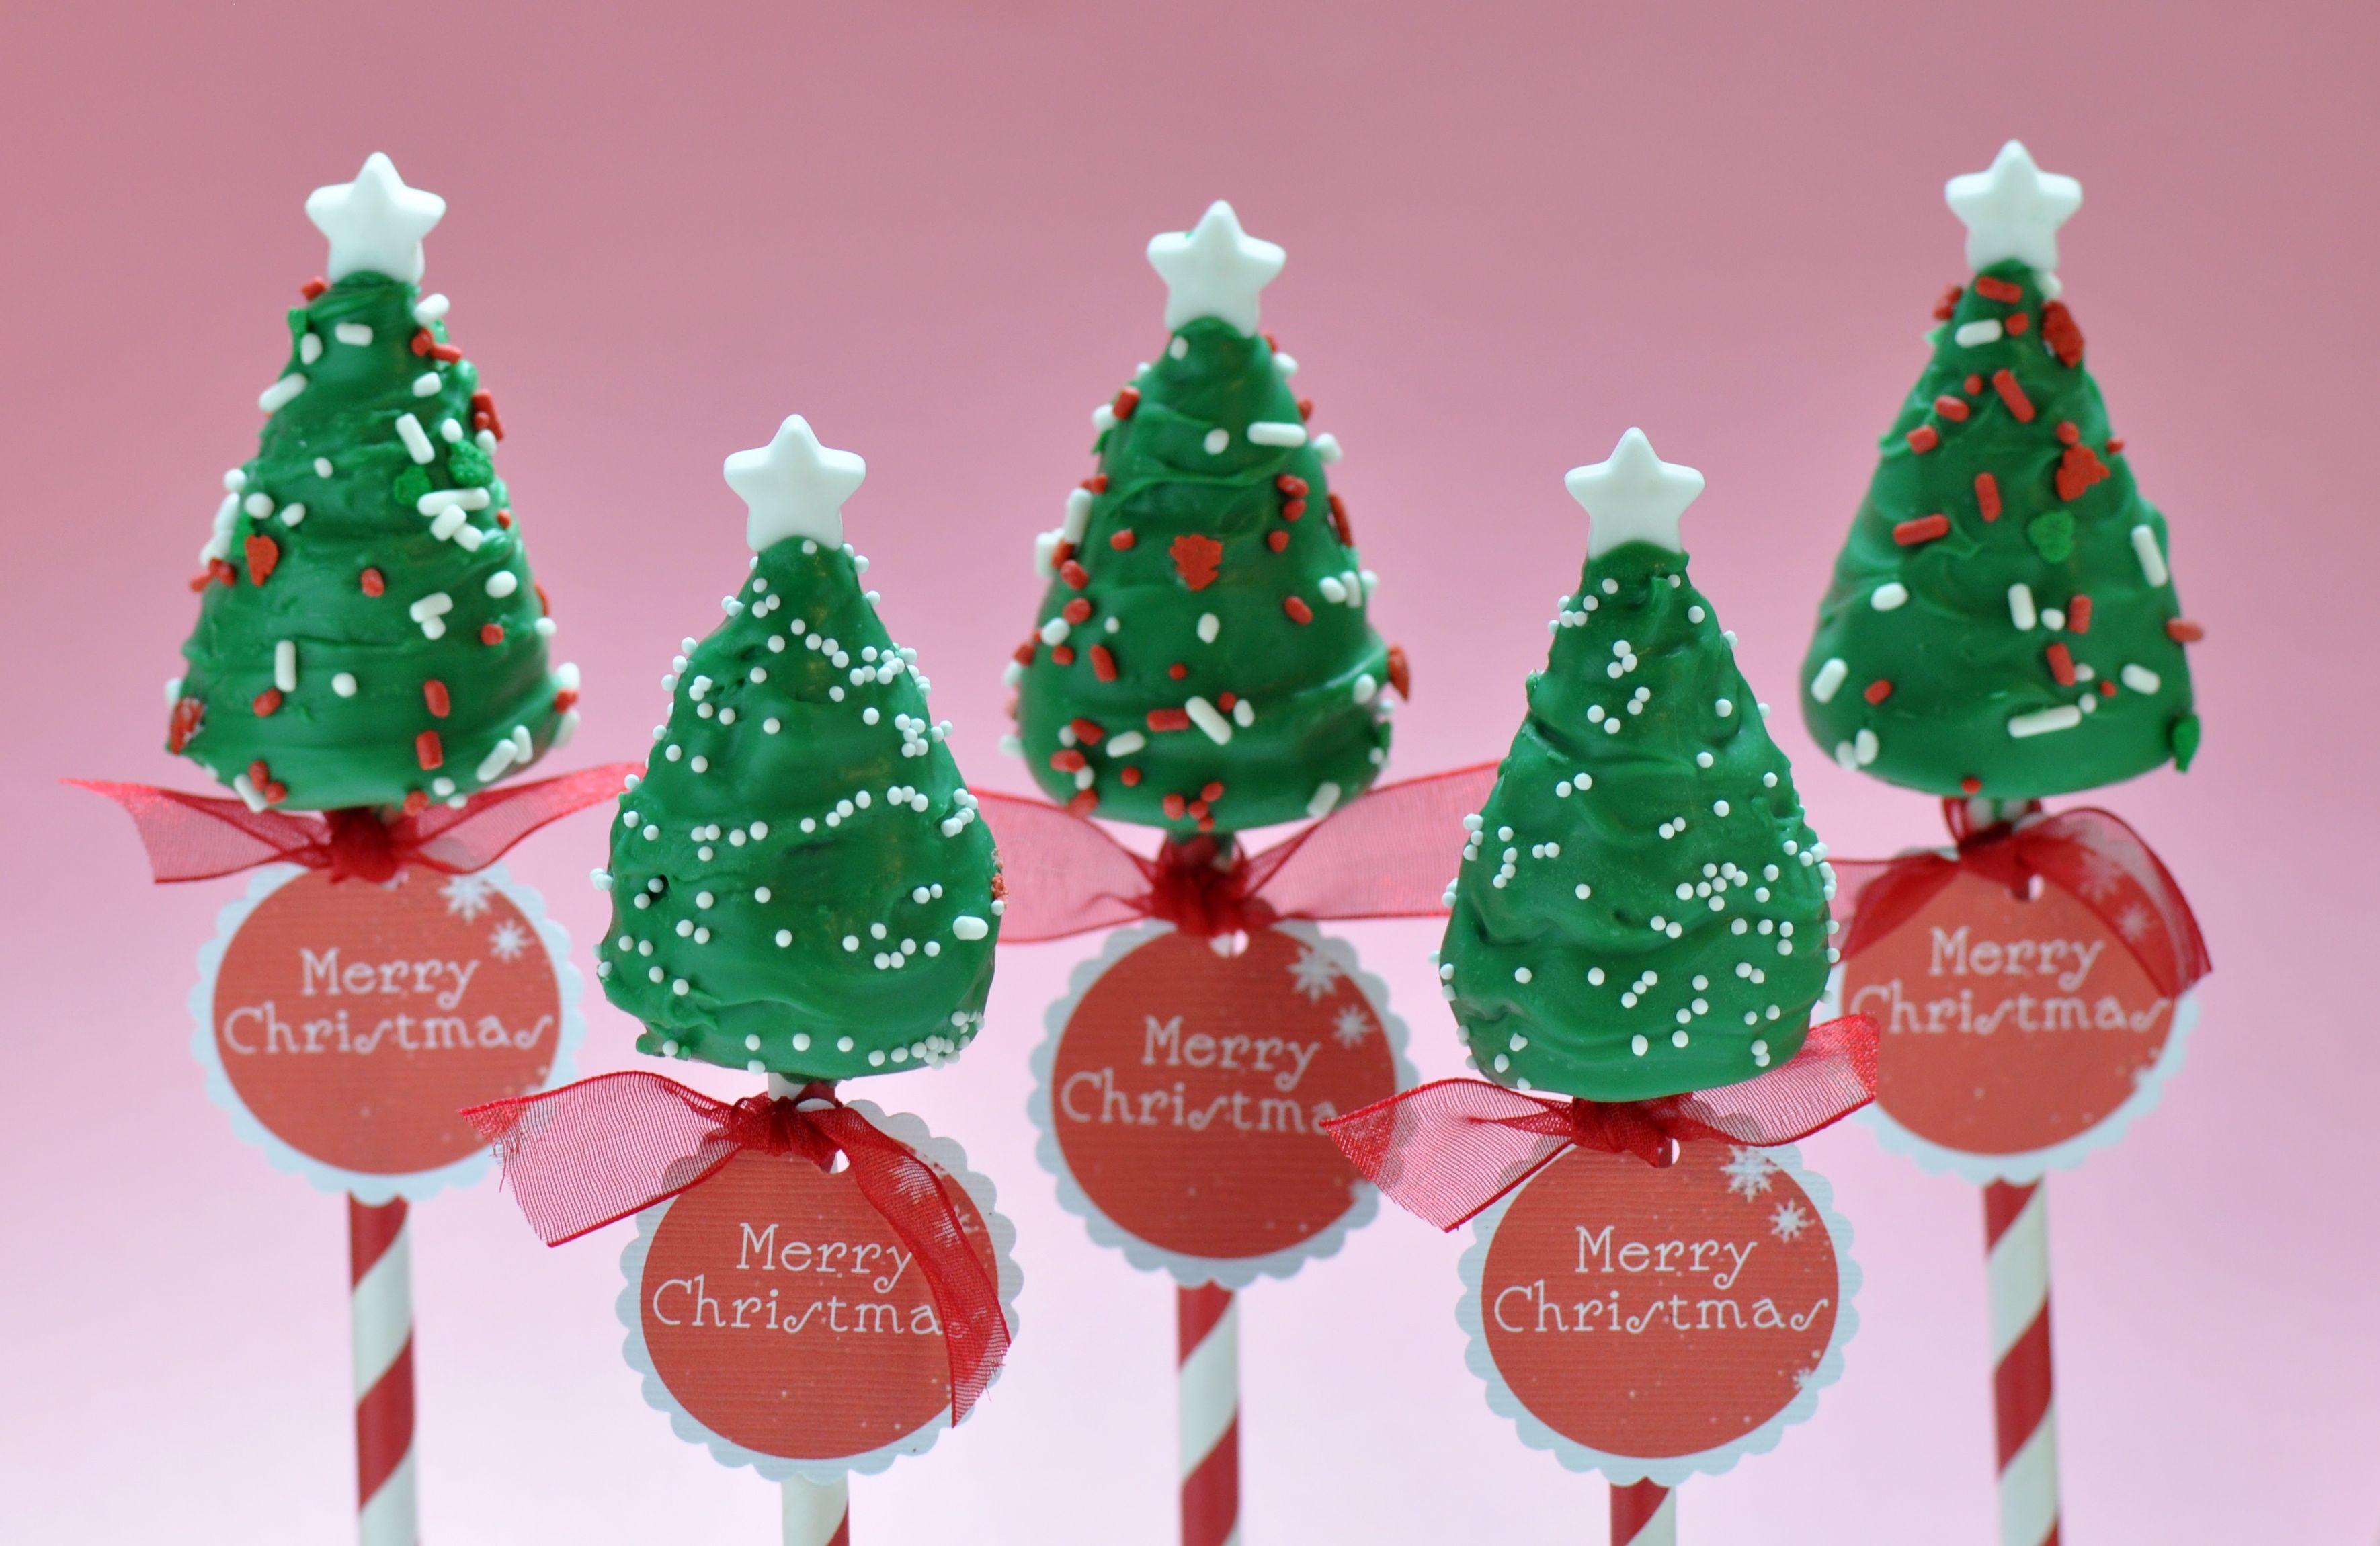 Christmas Tree Cake Pops Made With My Little Cupcake S Cone Shaped Cake Pop Mold Www Mylittlecupcakepop Cake Pop Molds No Bake Cake Pops Christmas Tree Cake